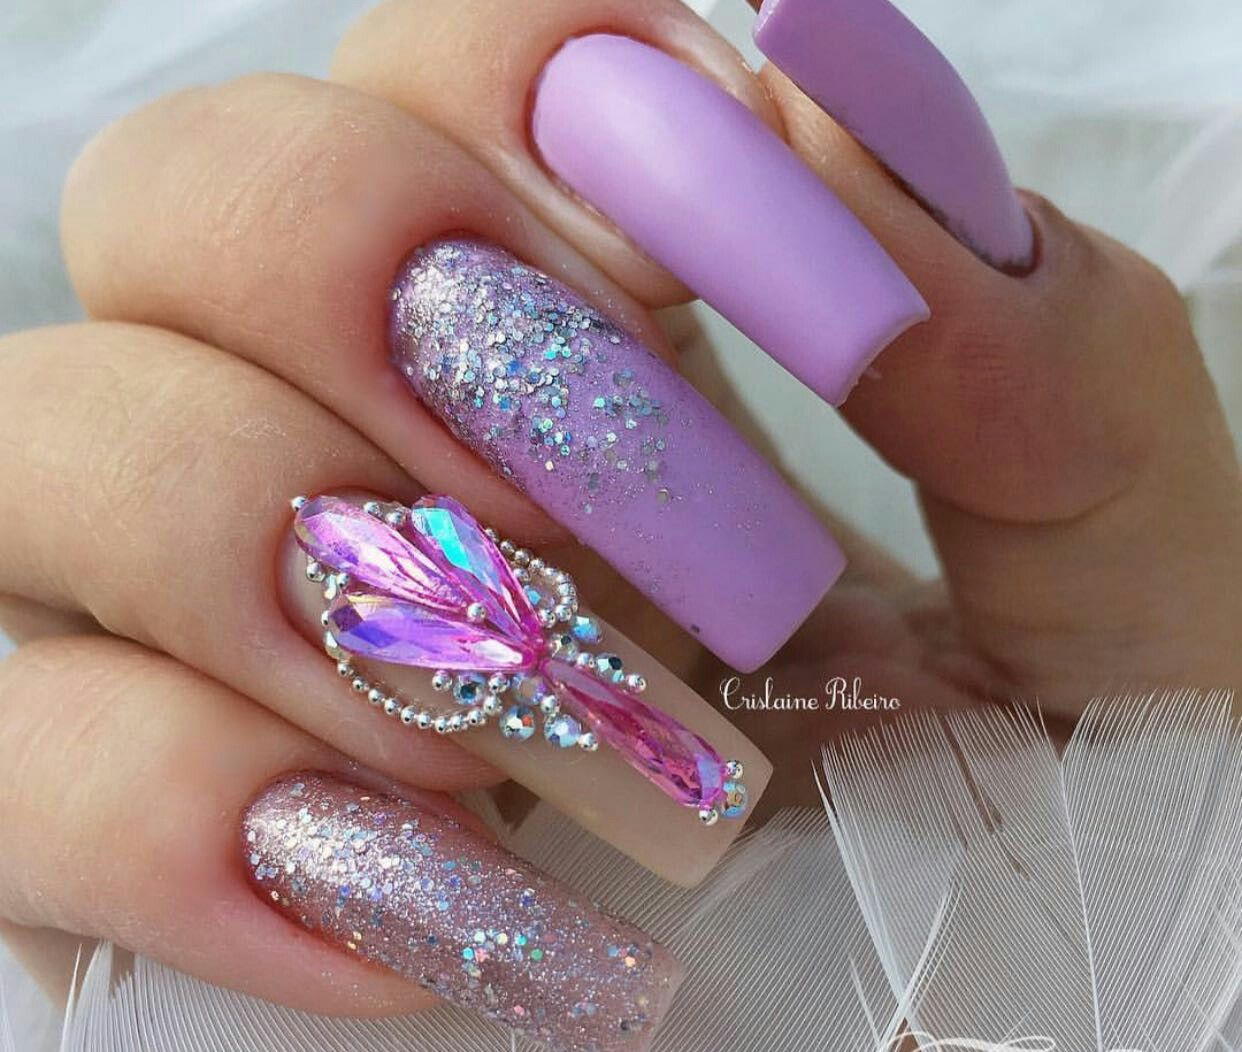 Pin by Debra Perry on Nails   Pinterest